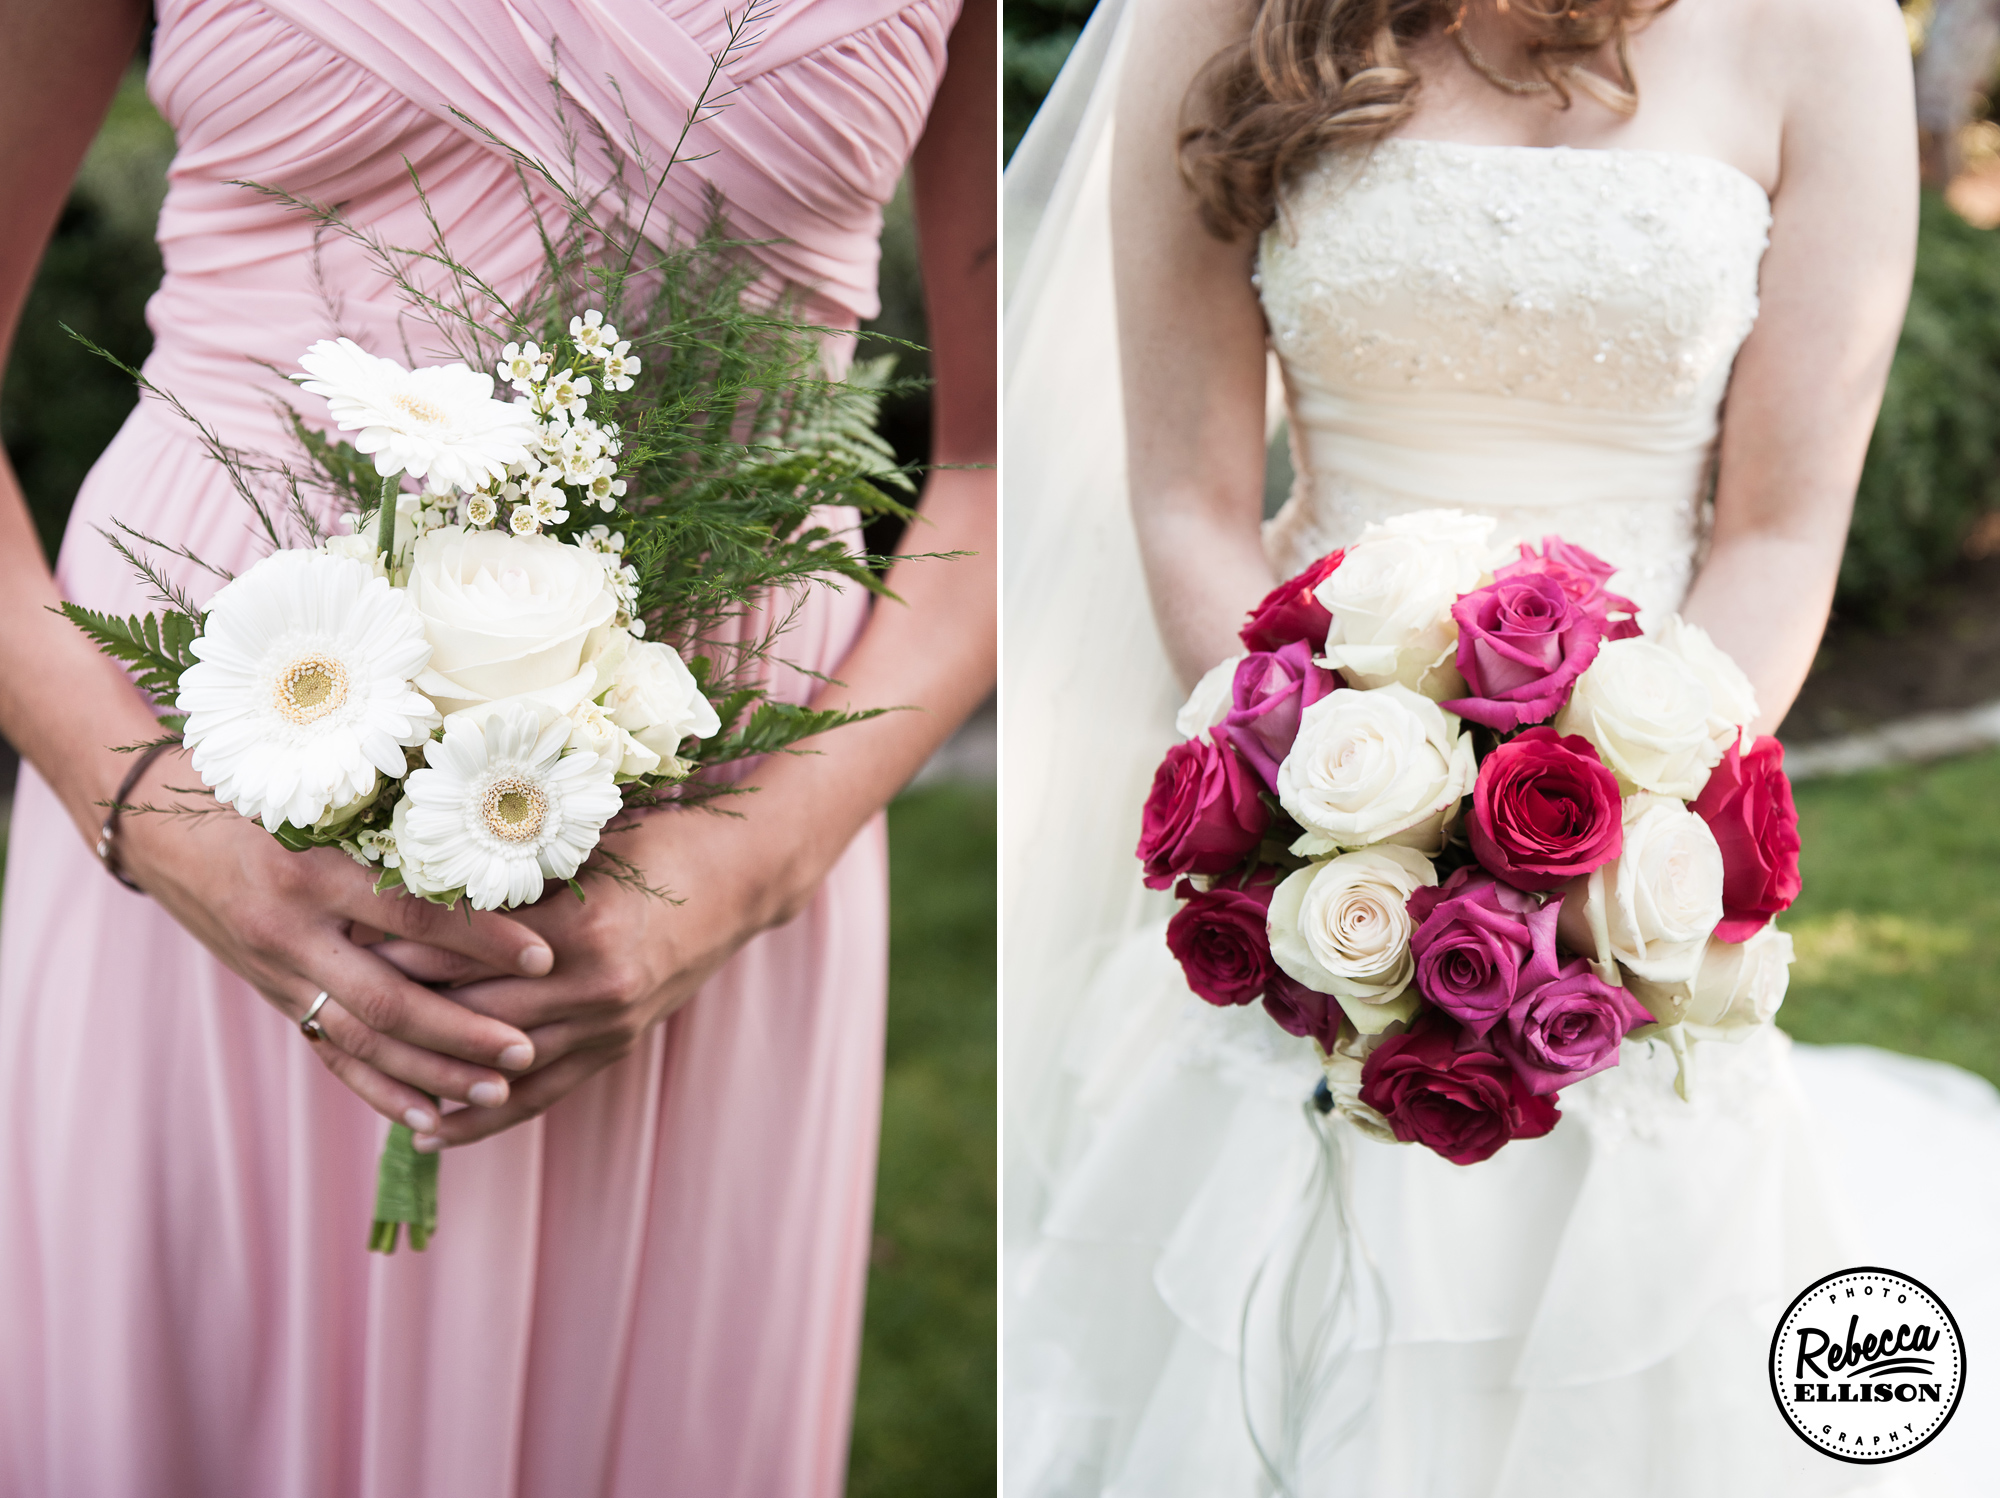 Wedding bouquets featuring white gerbera daisies and pink, white and red roses photographed by Rebecca Ellison Photography